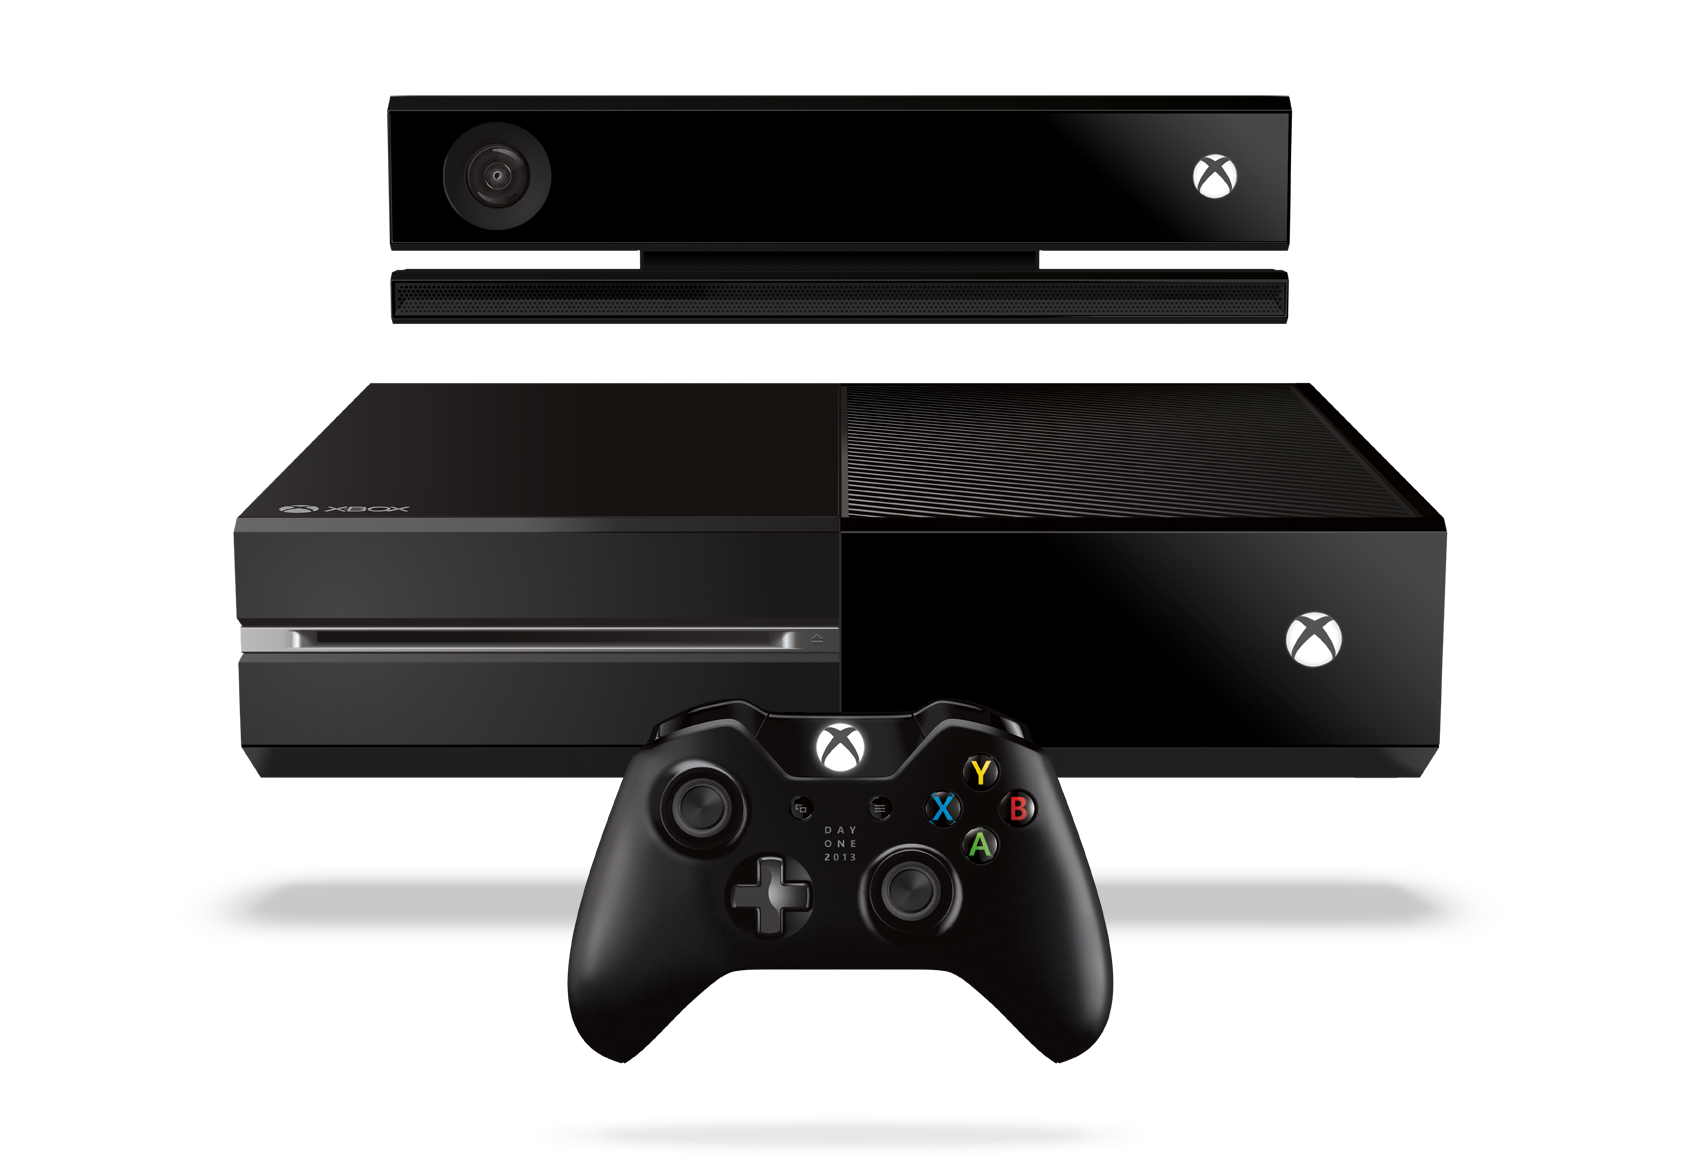 XBox One games console press photo courtesy Microsoft